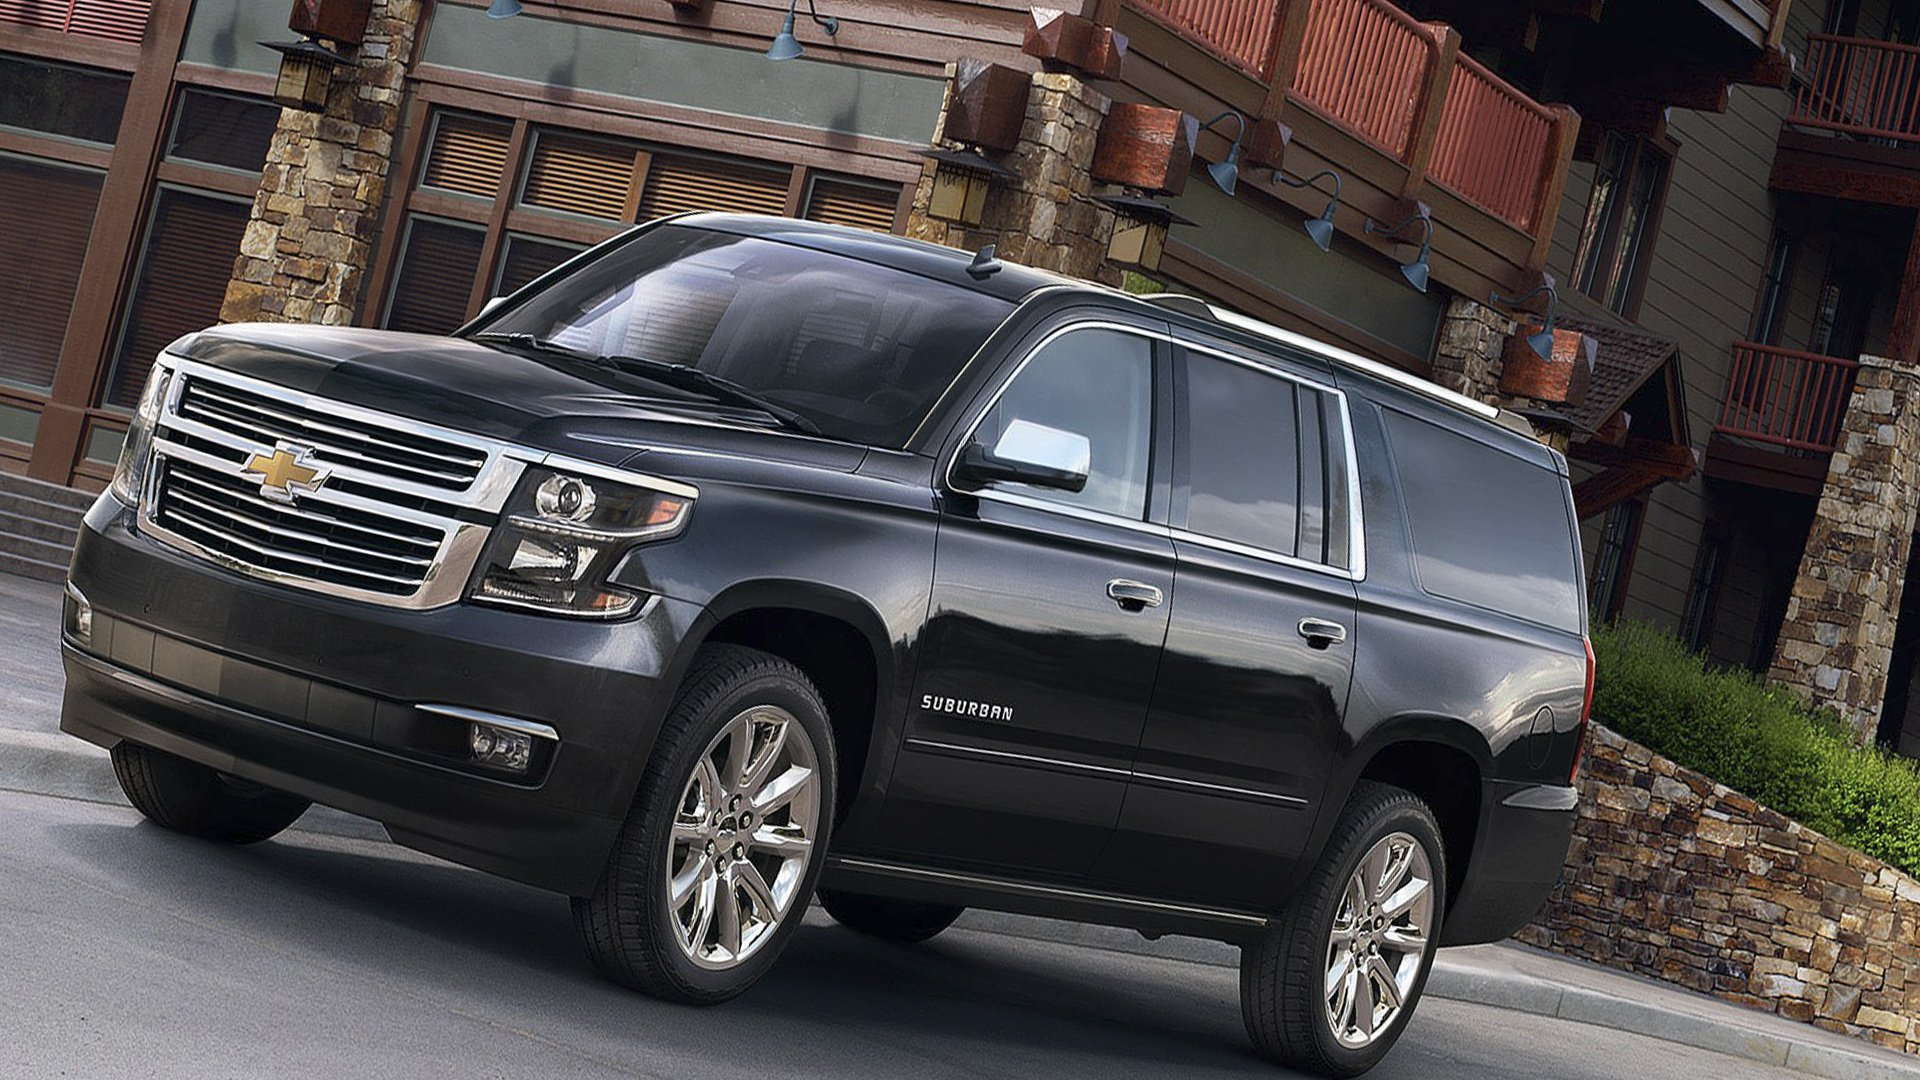 New 2019 Chevrolet Suburban Wallpaper HD Desktop